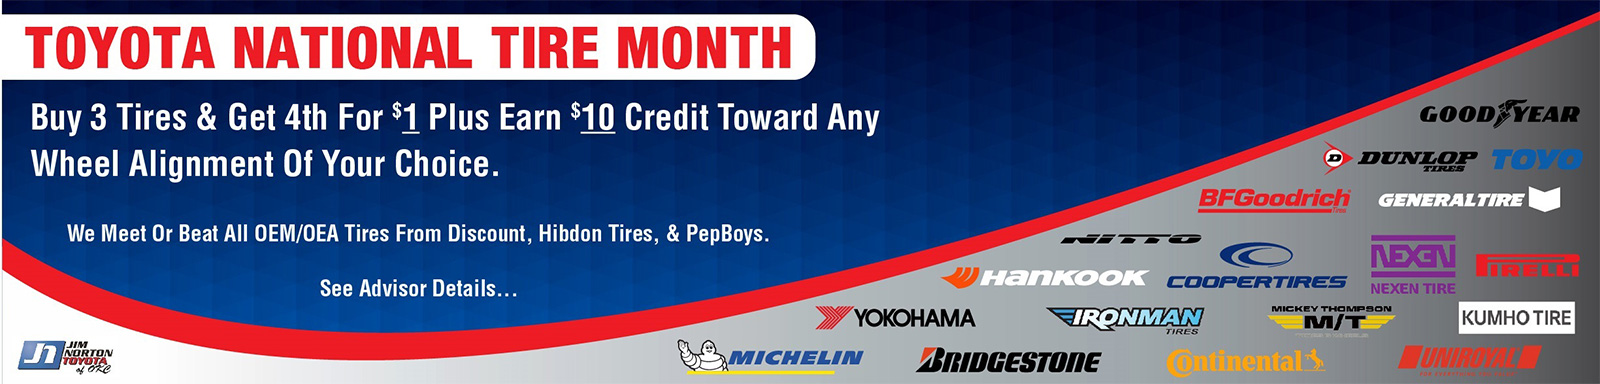 Toyota National Tire Month